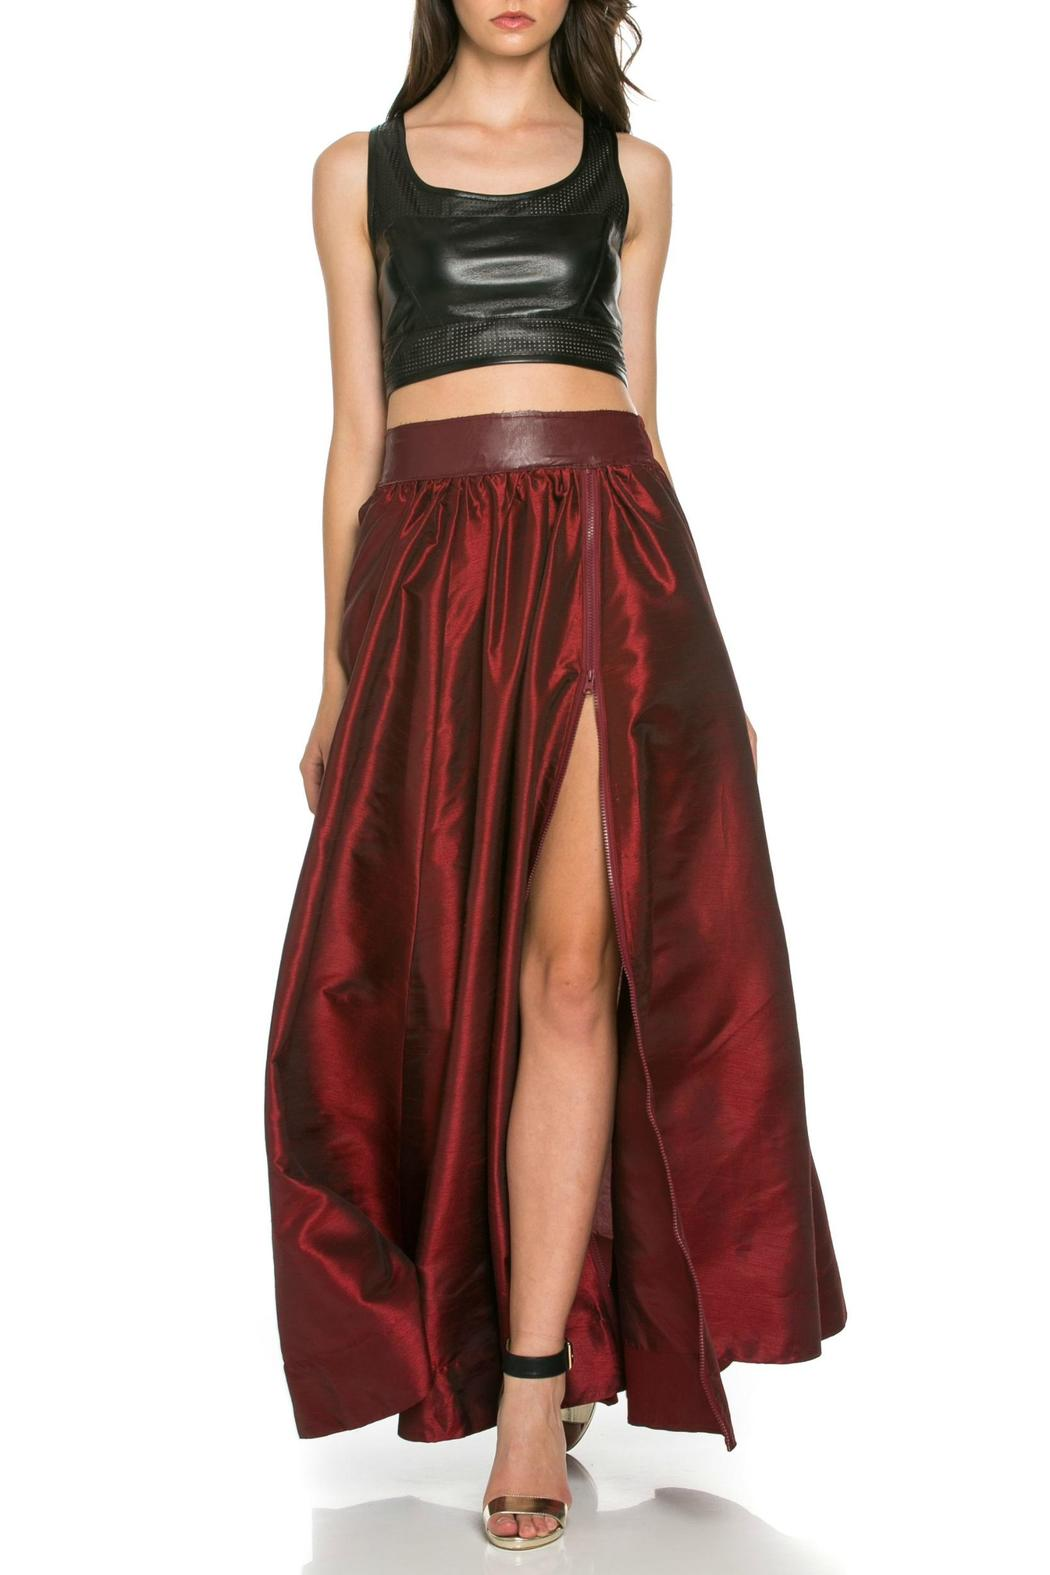 MHGS Wine Holiday Maxi - Front Full Image